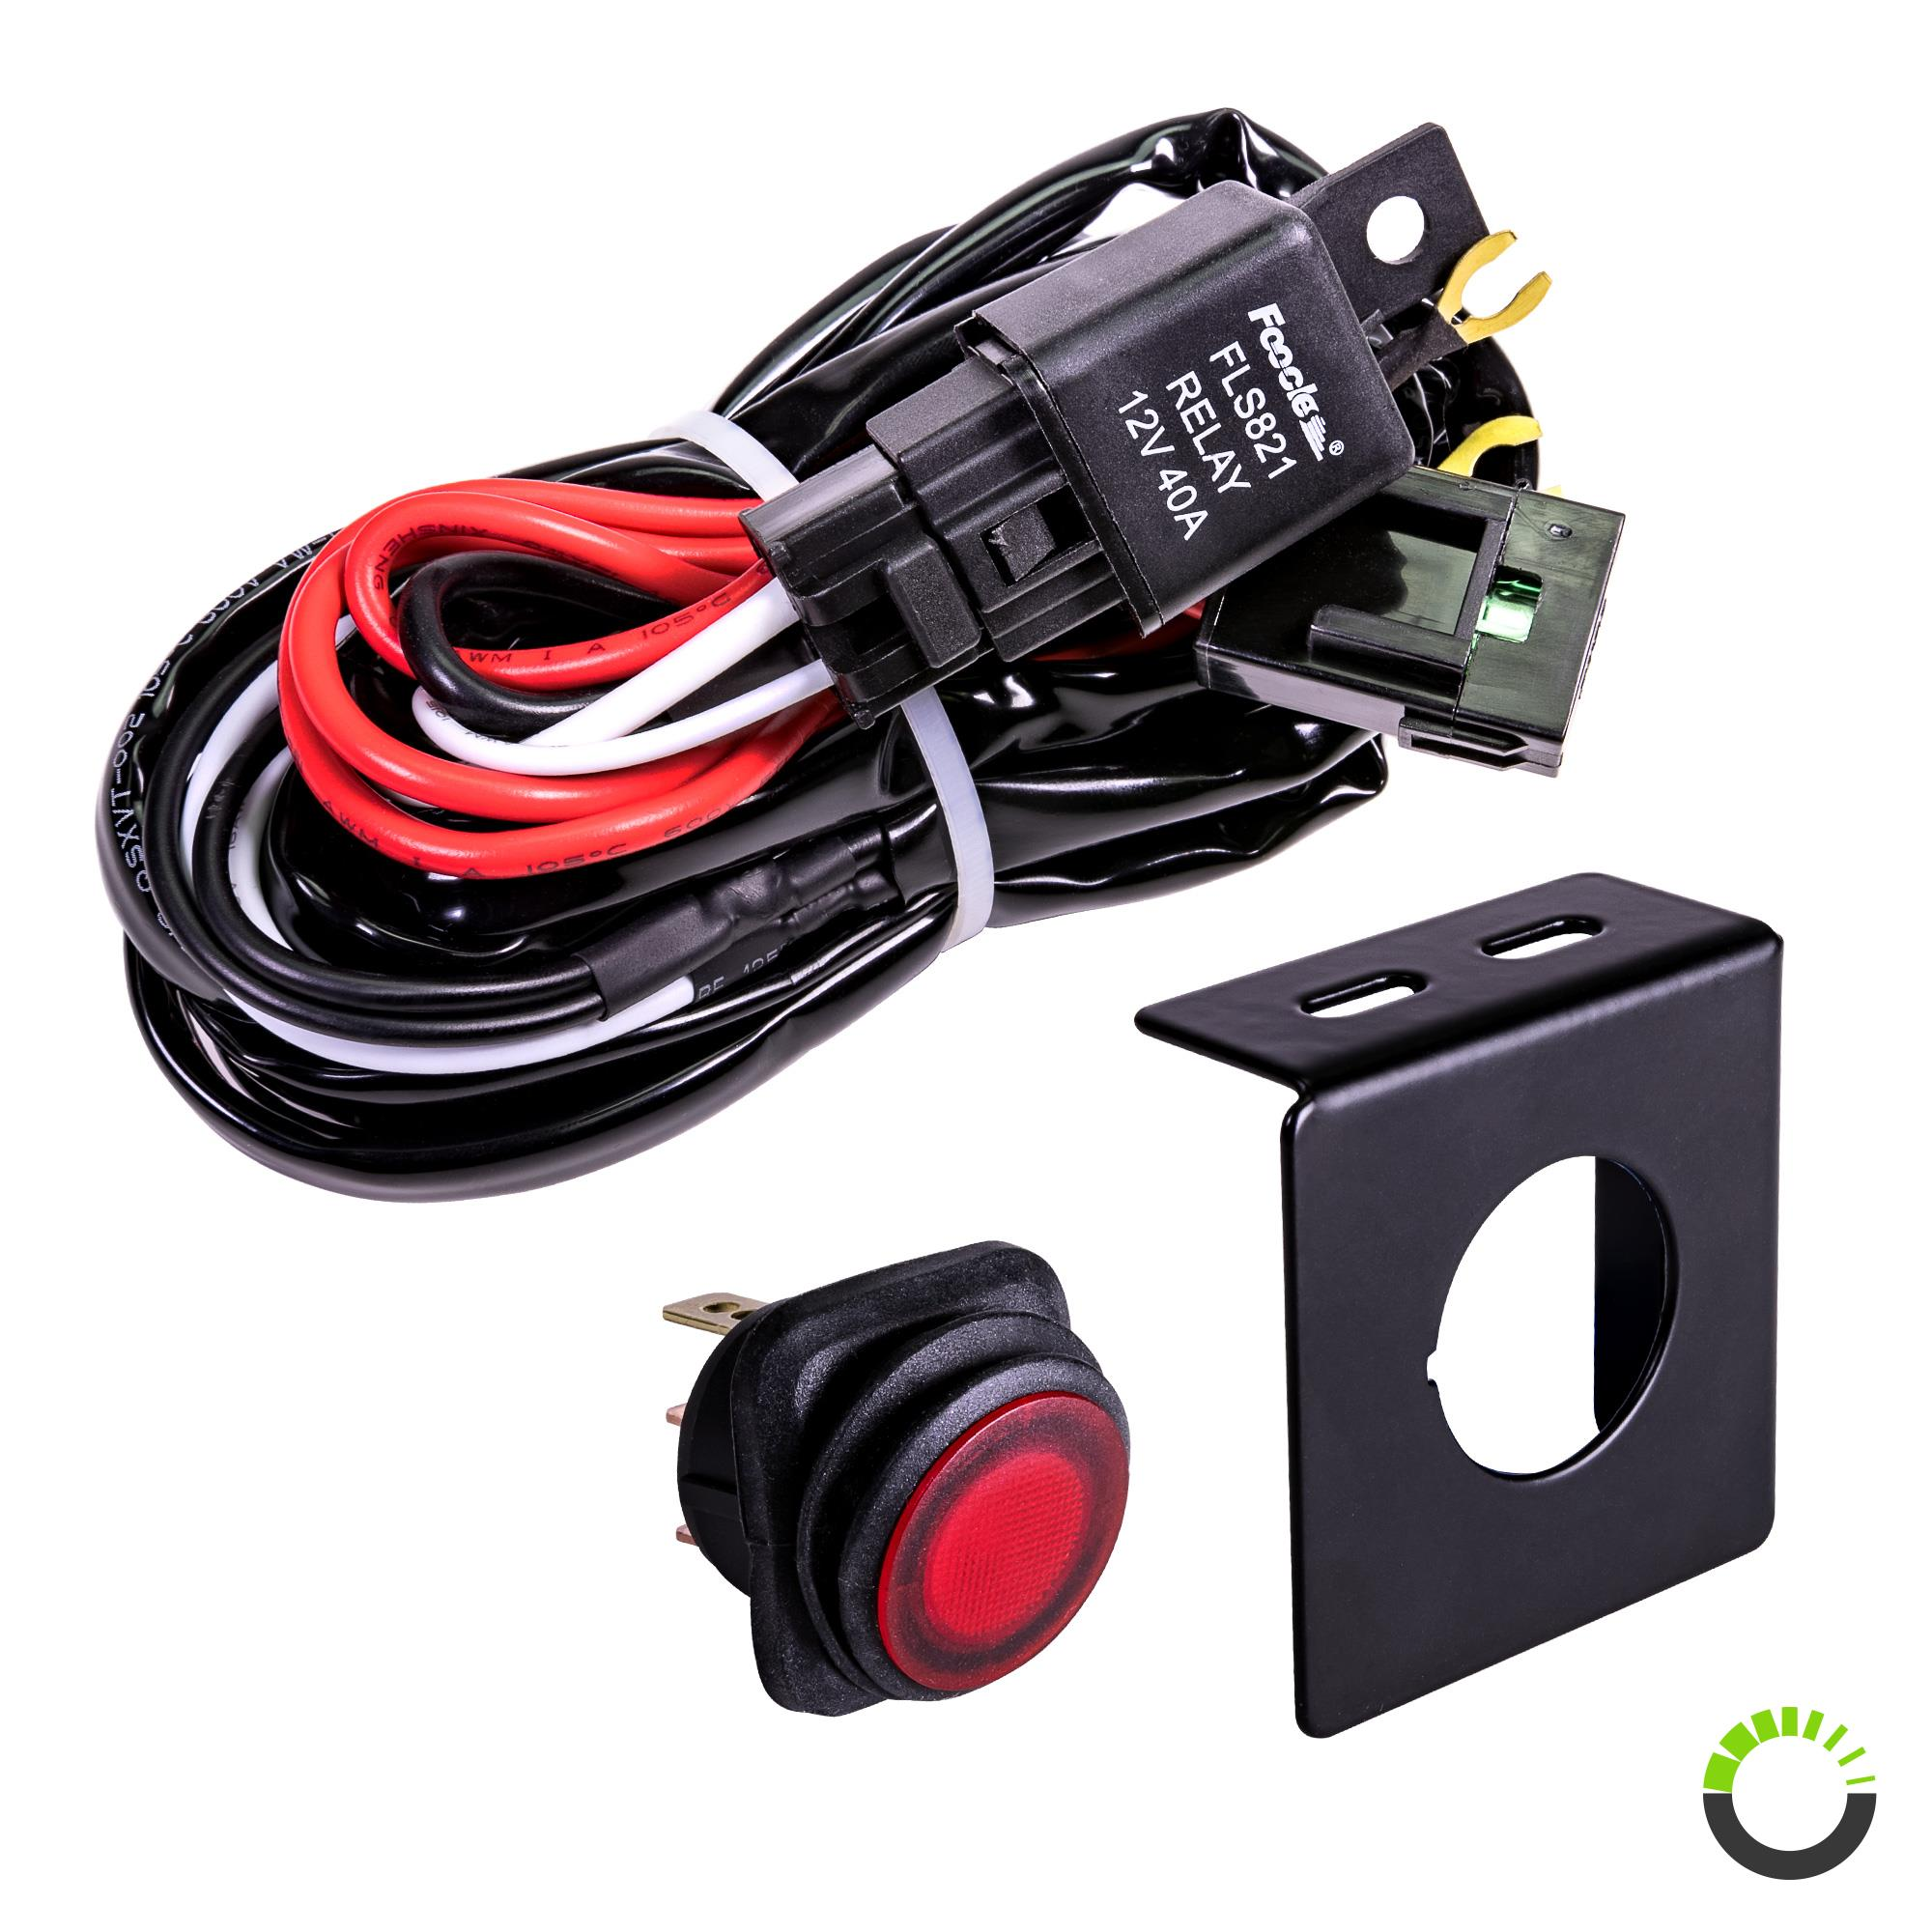 cruizer 8ft 30 40a relay 30a fuse 1 2 wiring harness w 25a spst on off rocker switch red led light wiring harness with switch and relay light wiring harness #10